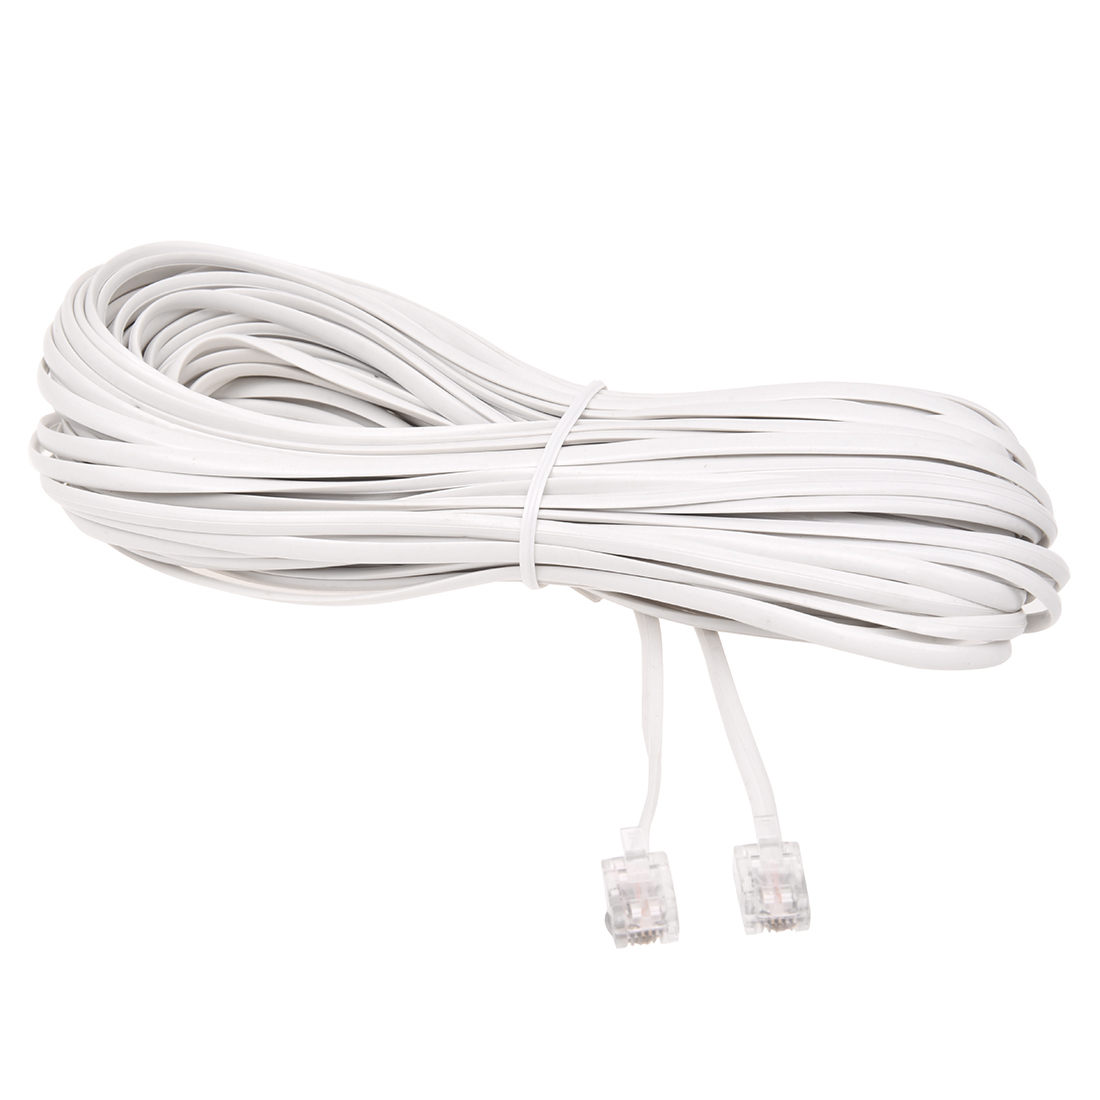 White Male 6P2C RJ11 Plug Telephone Fax Modem Line Cable, 14M for Landline Telephone-SCLL